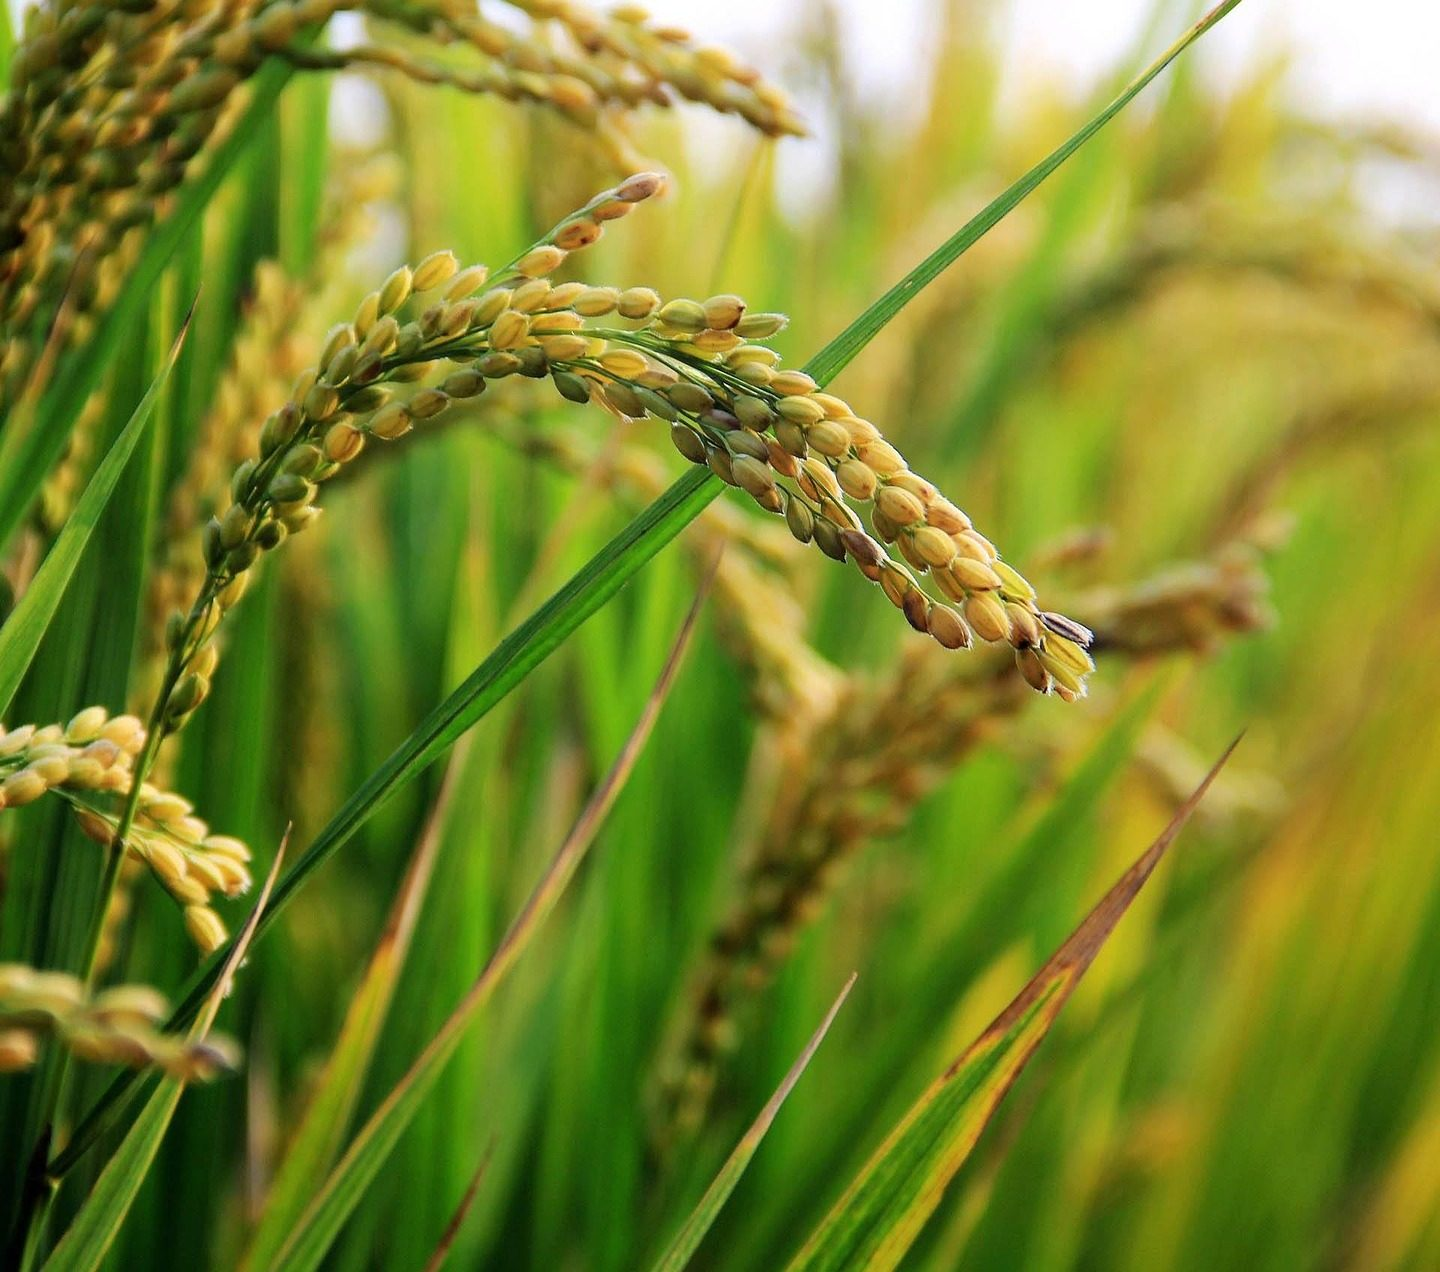 Salt tolerant rice variety developed in India